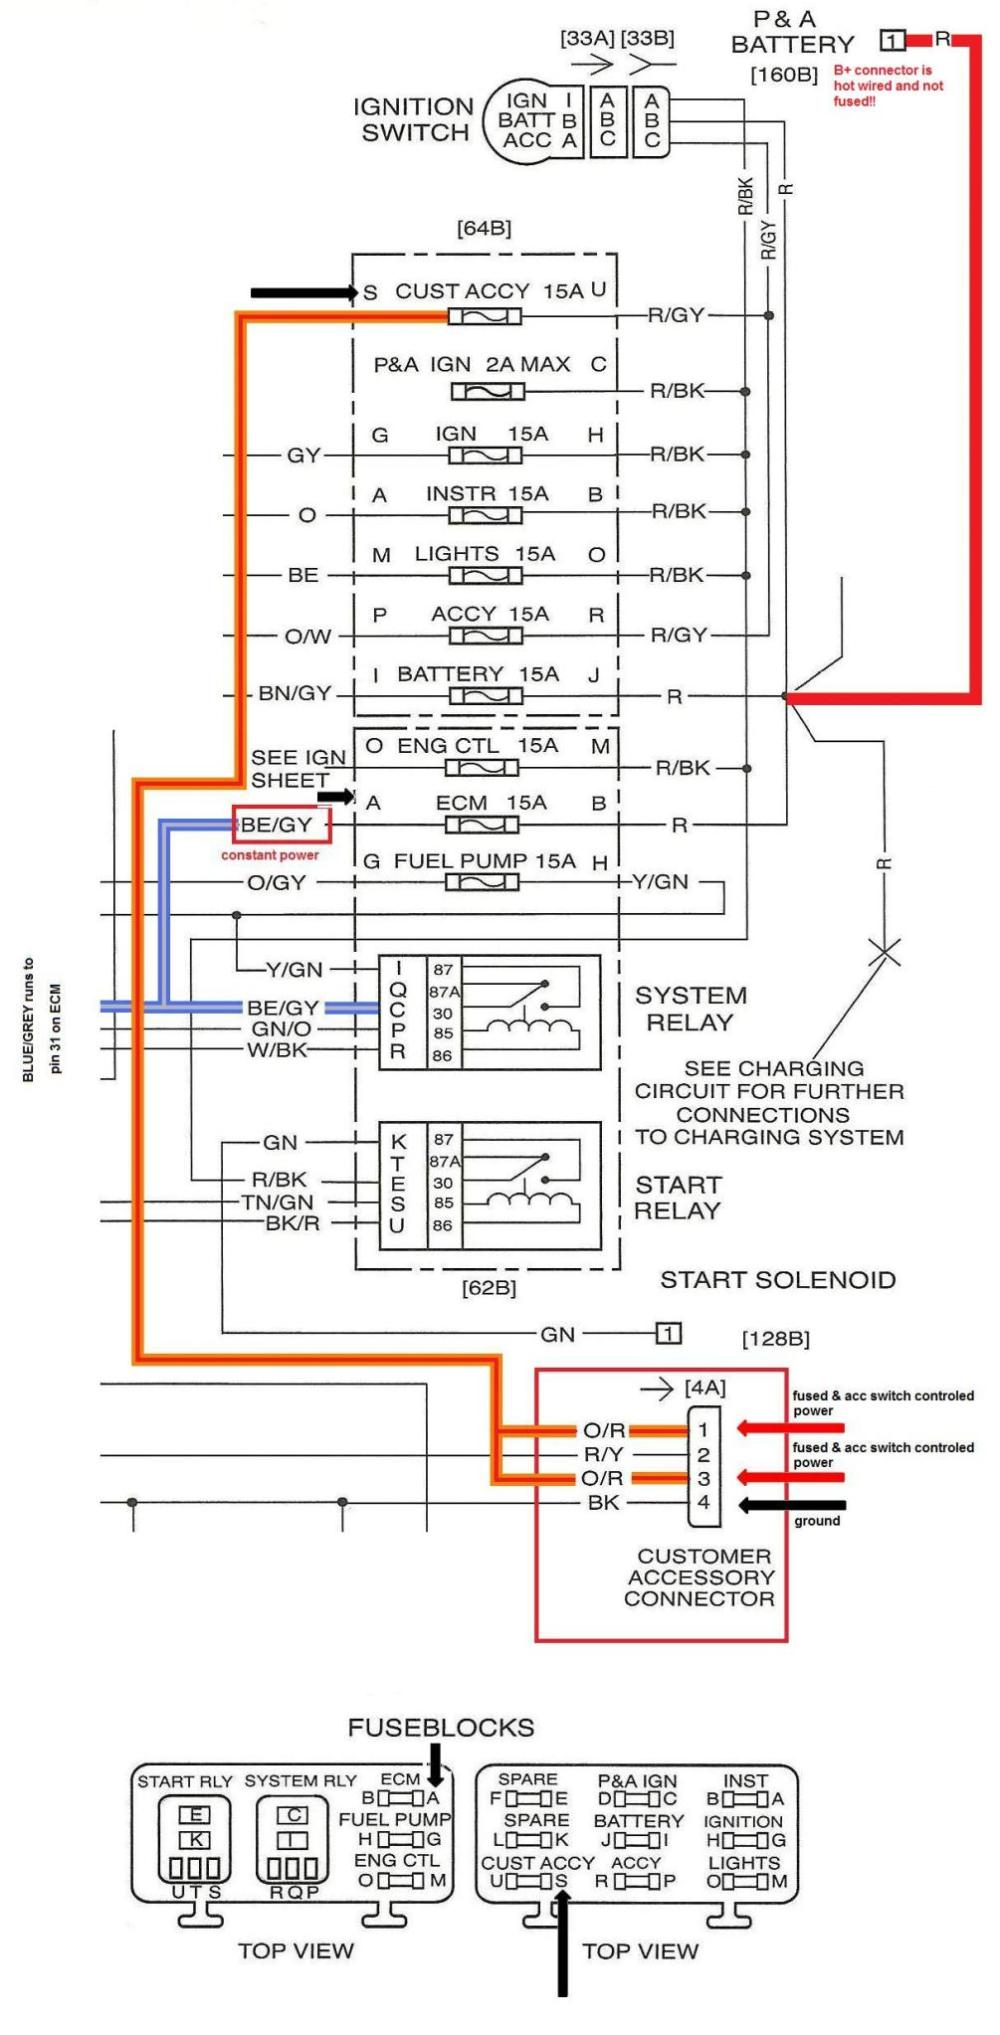 medium resolution of harley stereo wiring diagram wiring diagram third level 2006 ez go wiring diagram 2006 harley davidson radio wiring diagram